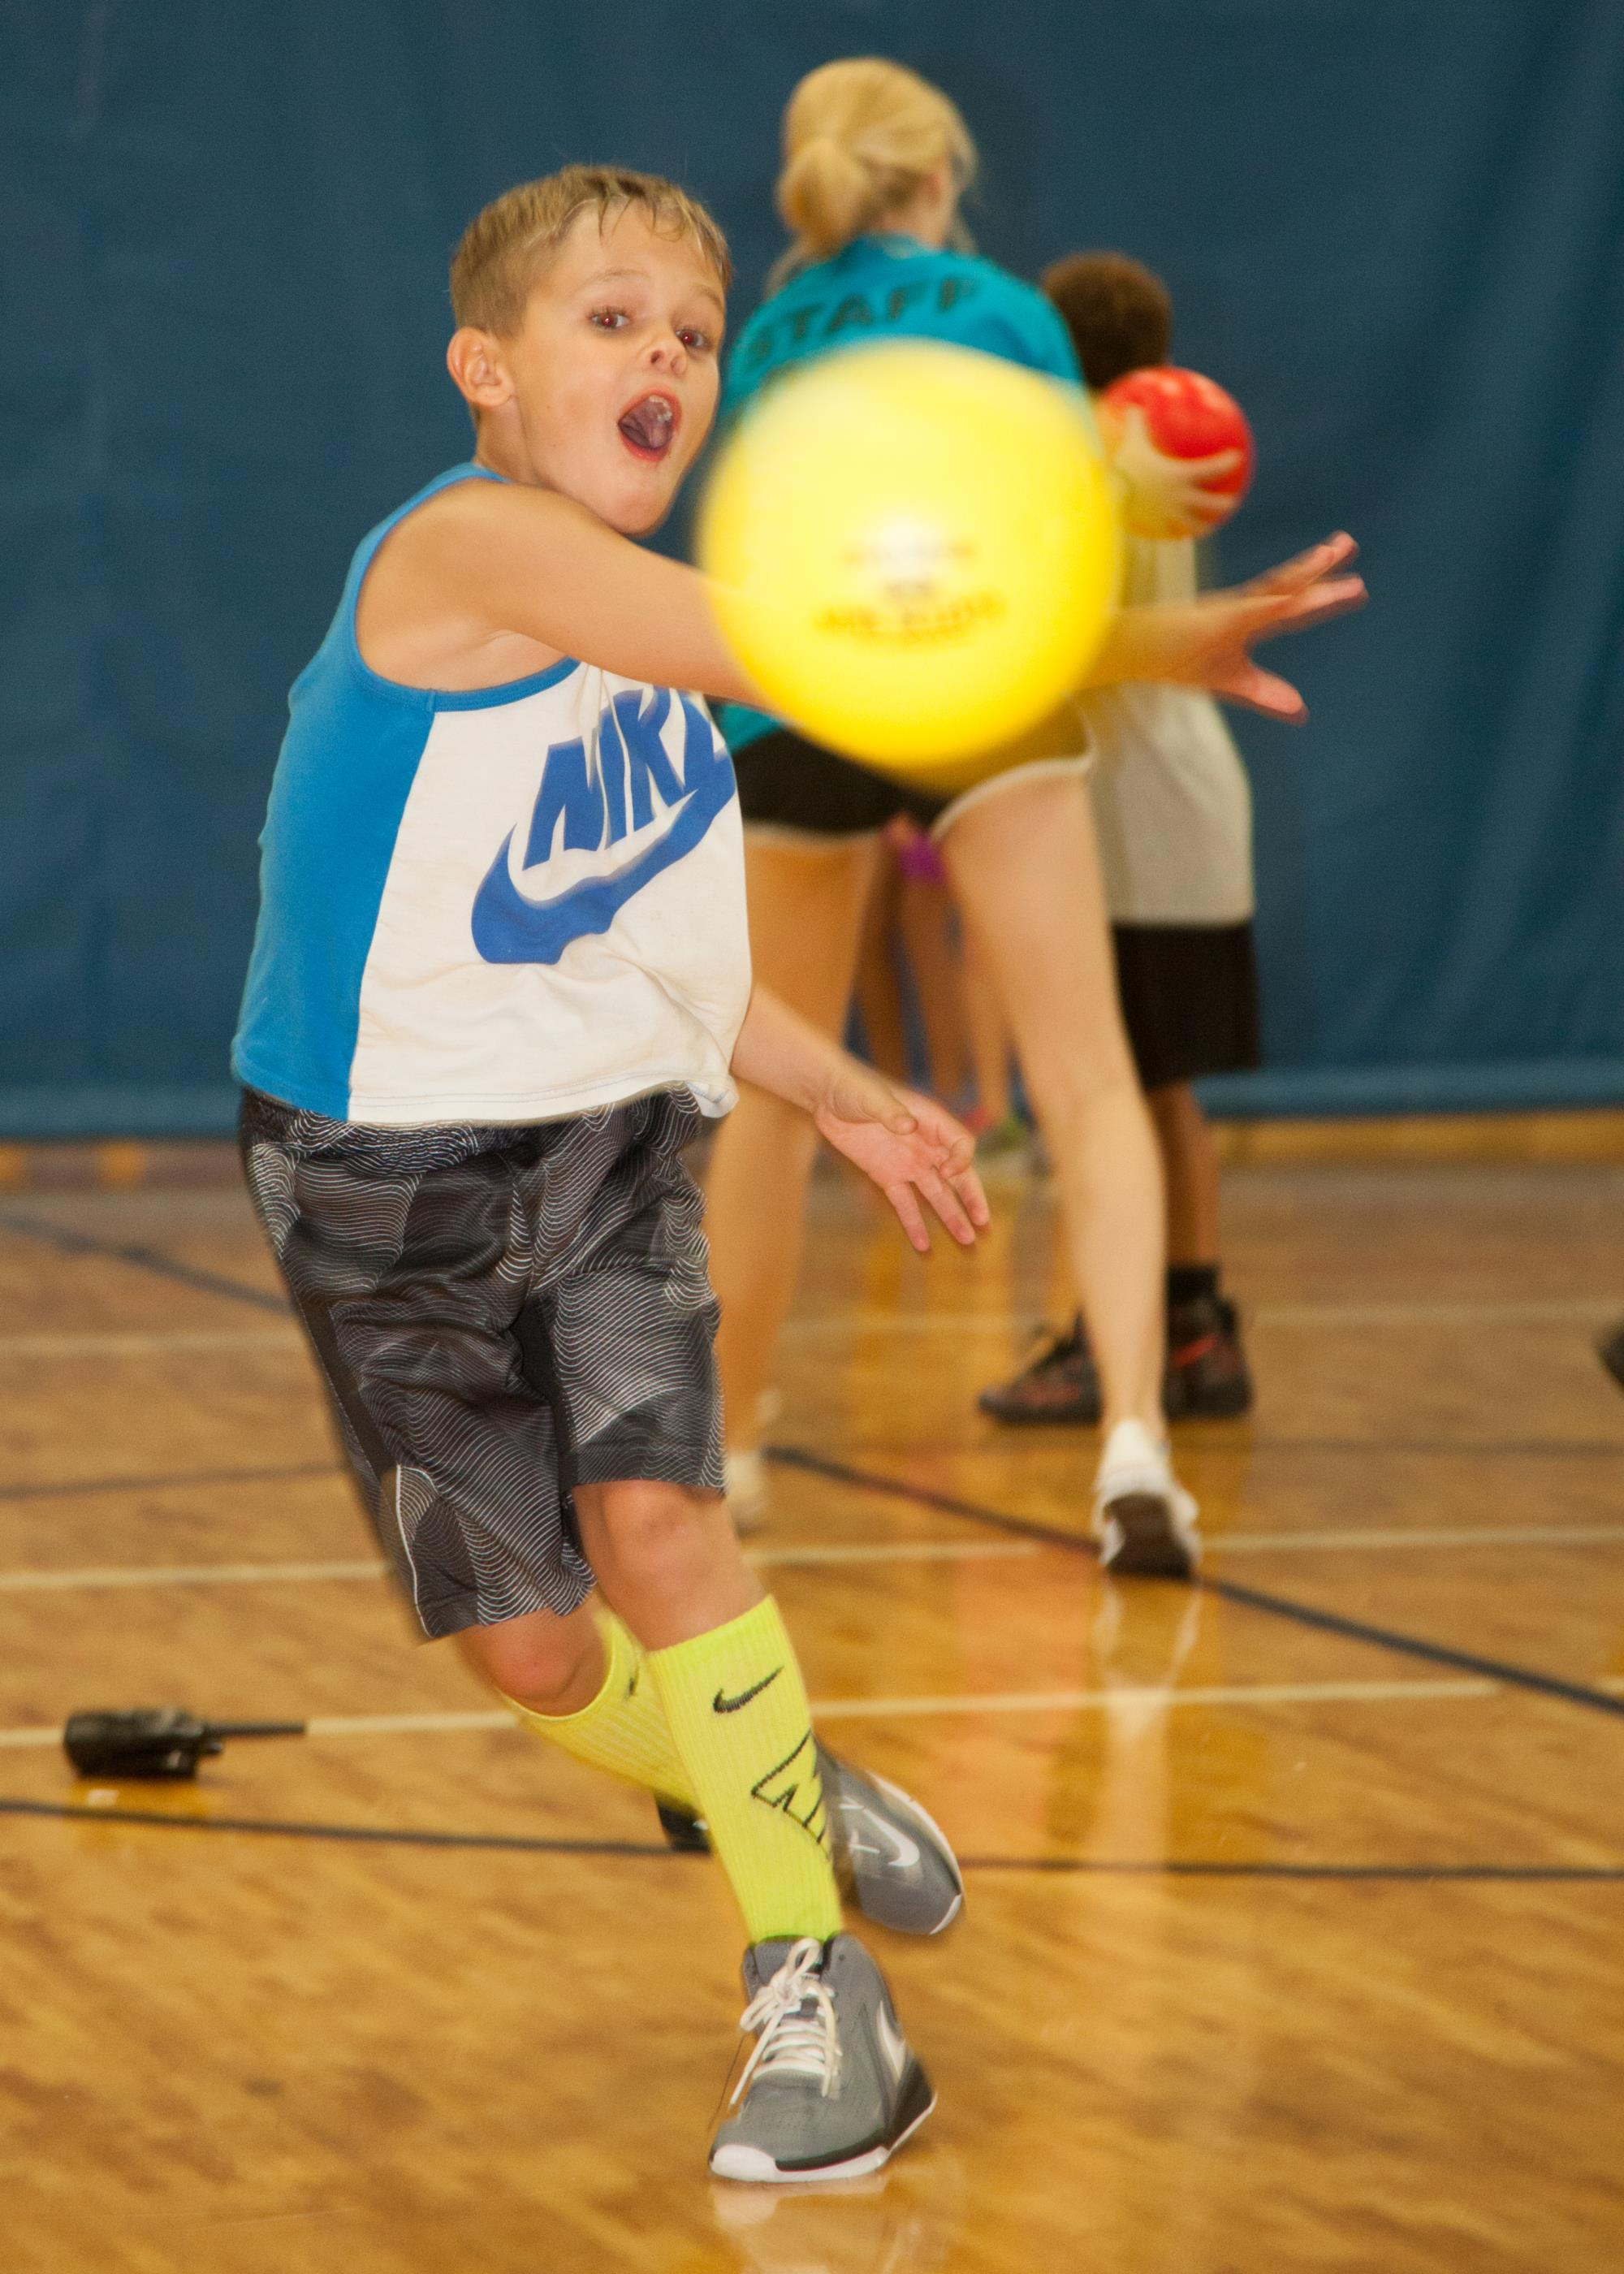 Boy throwing a yellow dodge ball